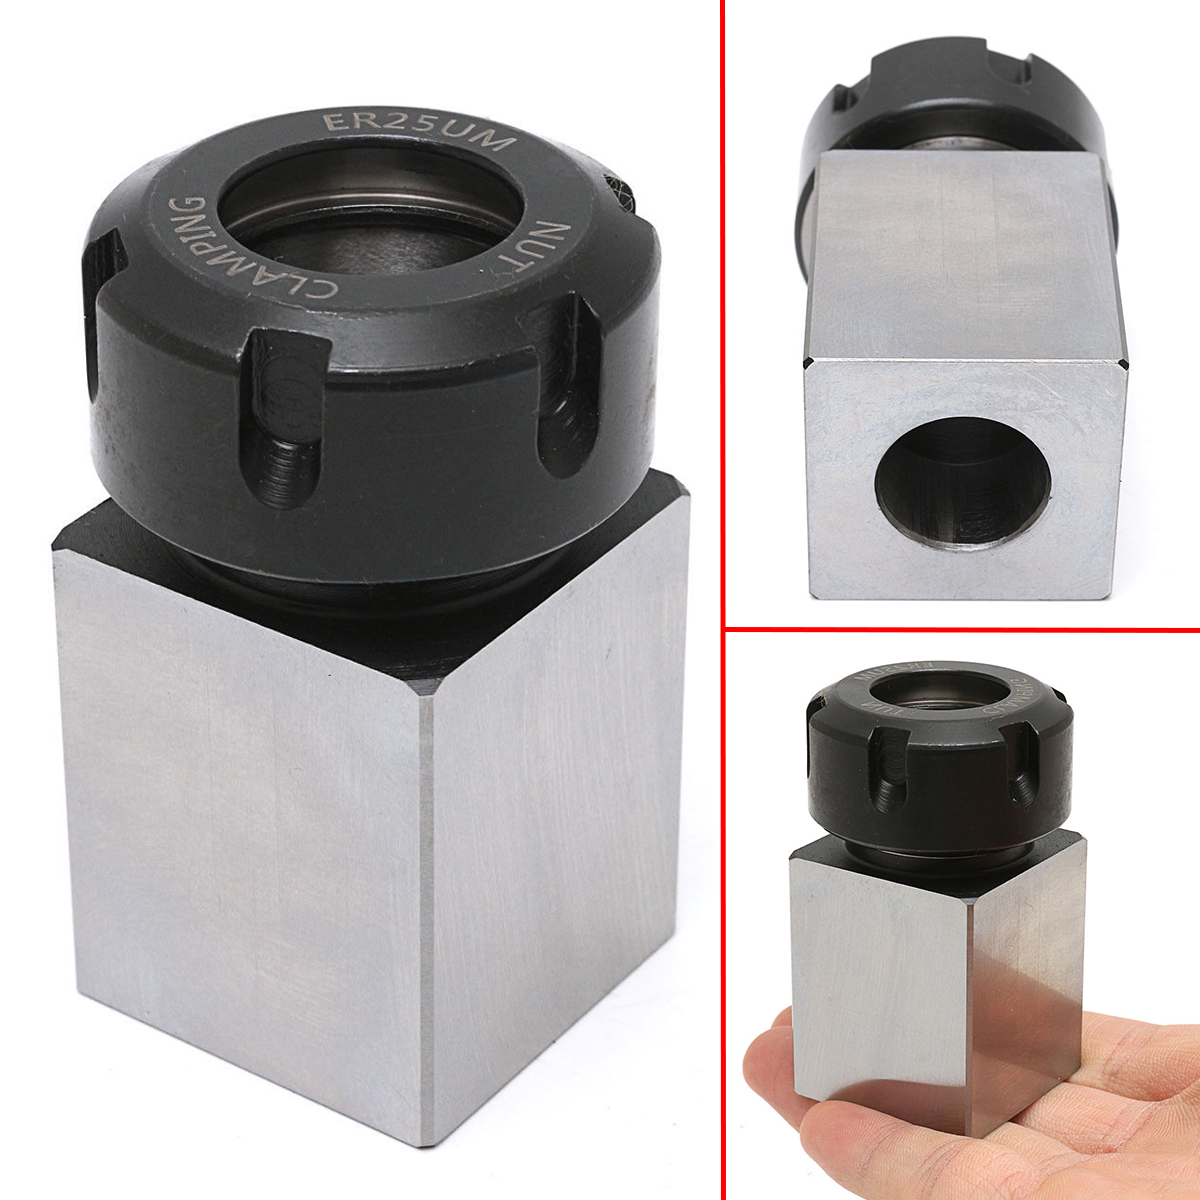 1pc ER-25 Square Collet Chuck Holder Block 3900-5123 35x65mm For Lathe Engraving Machine 1pc square er40 collet chuck block holder 3900 5125 for cnc lathe engraving machine cross hole drilling